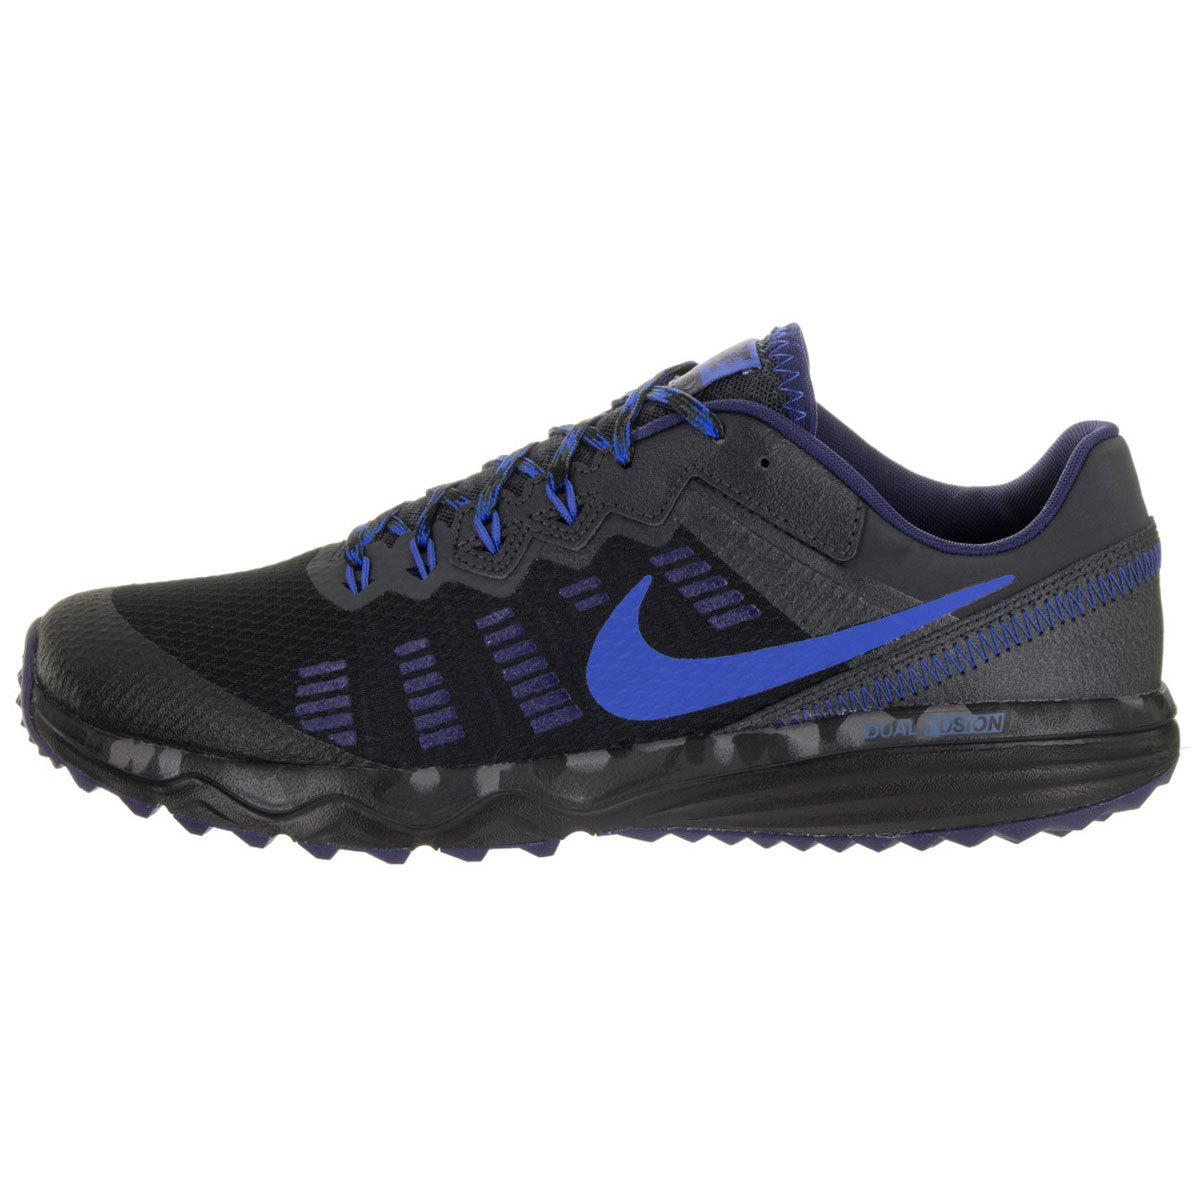 Satisfacer Simpático Pies suaves  NIKE Men's Dual Fusion Trail 2 Running Shoes - Bob's Stores